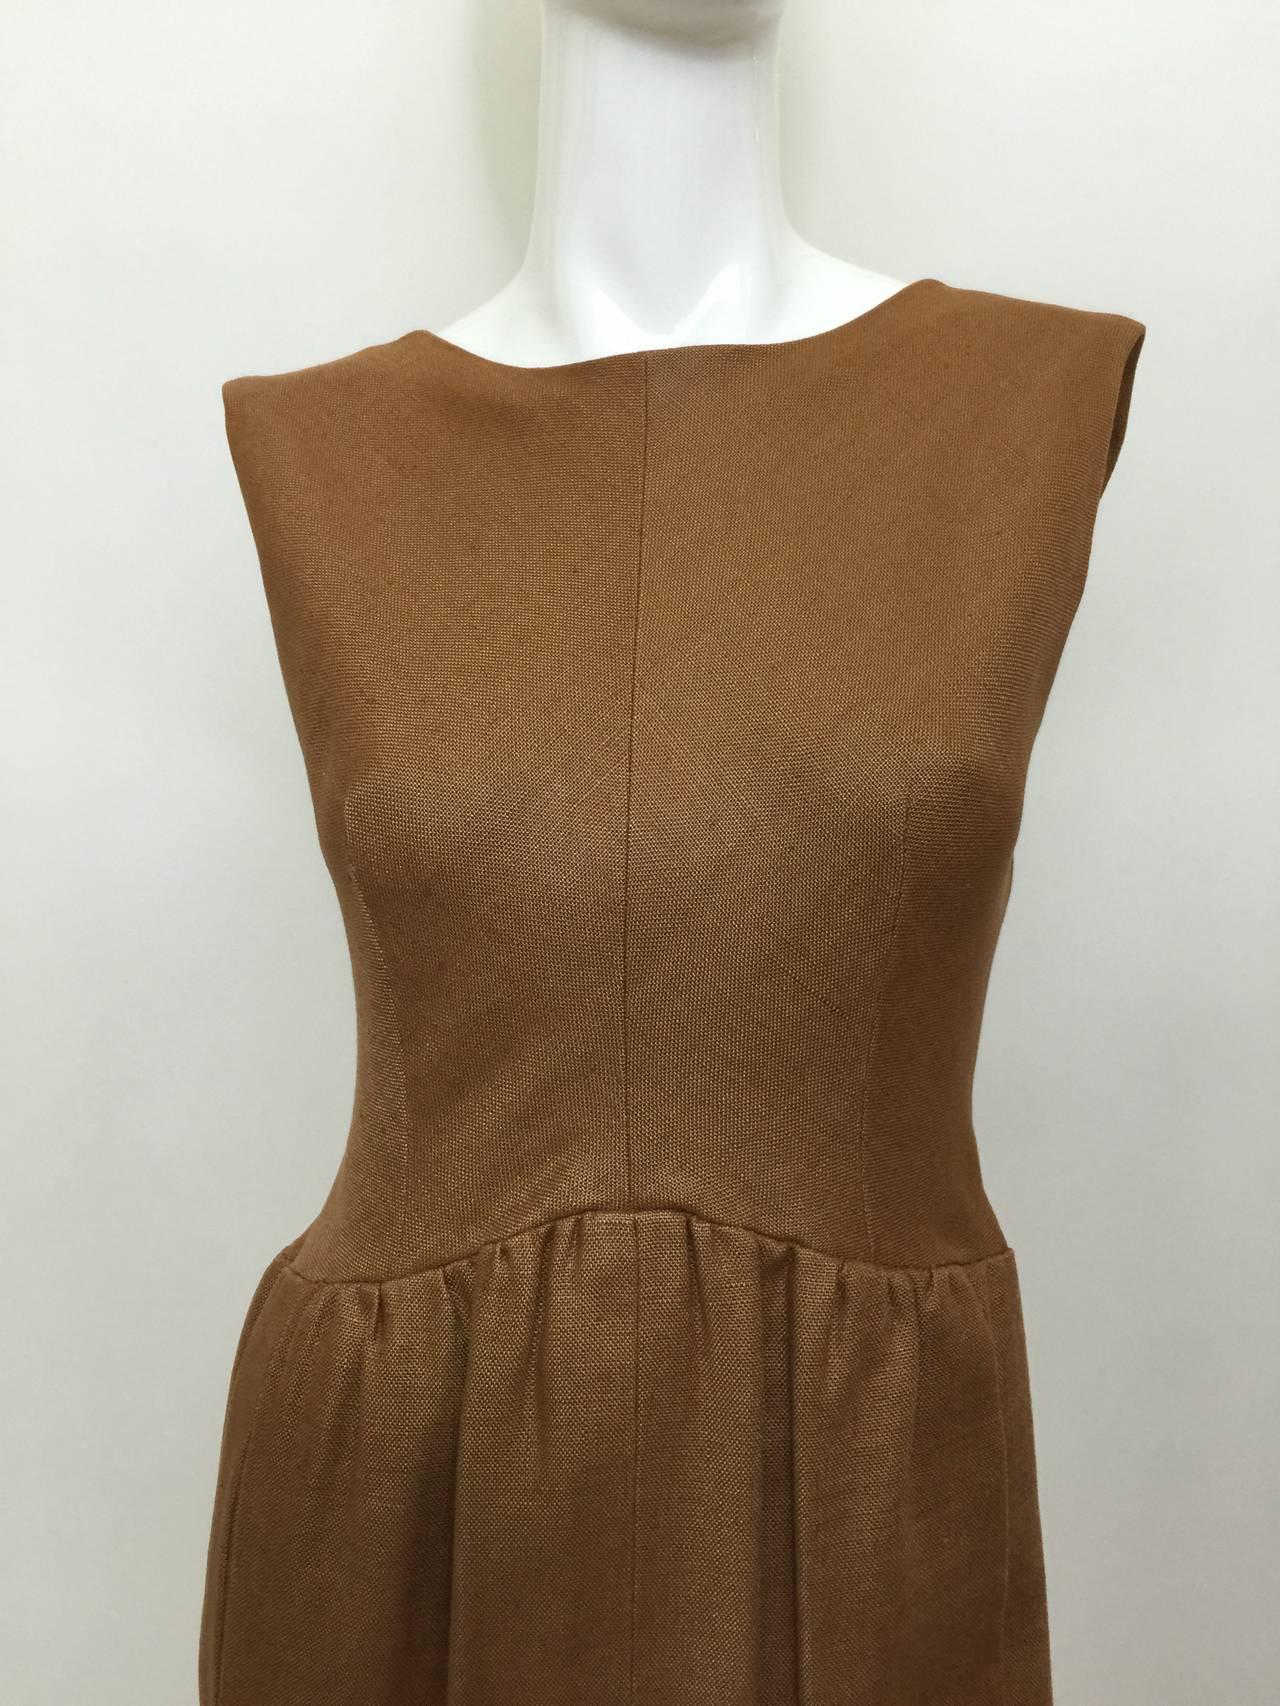 Women's  c.1961 Norman Norell Dress as seen on Jacqueline Kennedy  For Sale